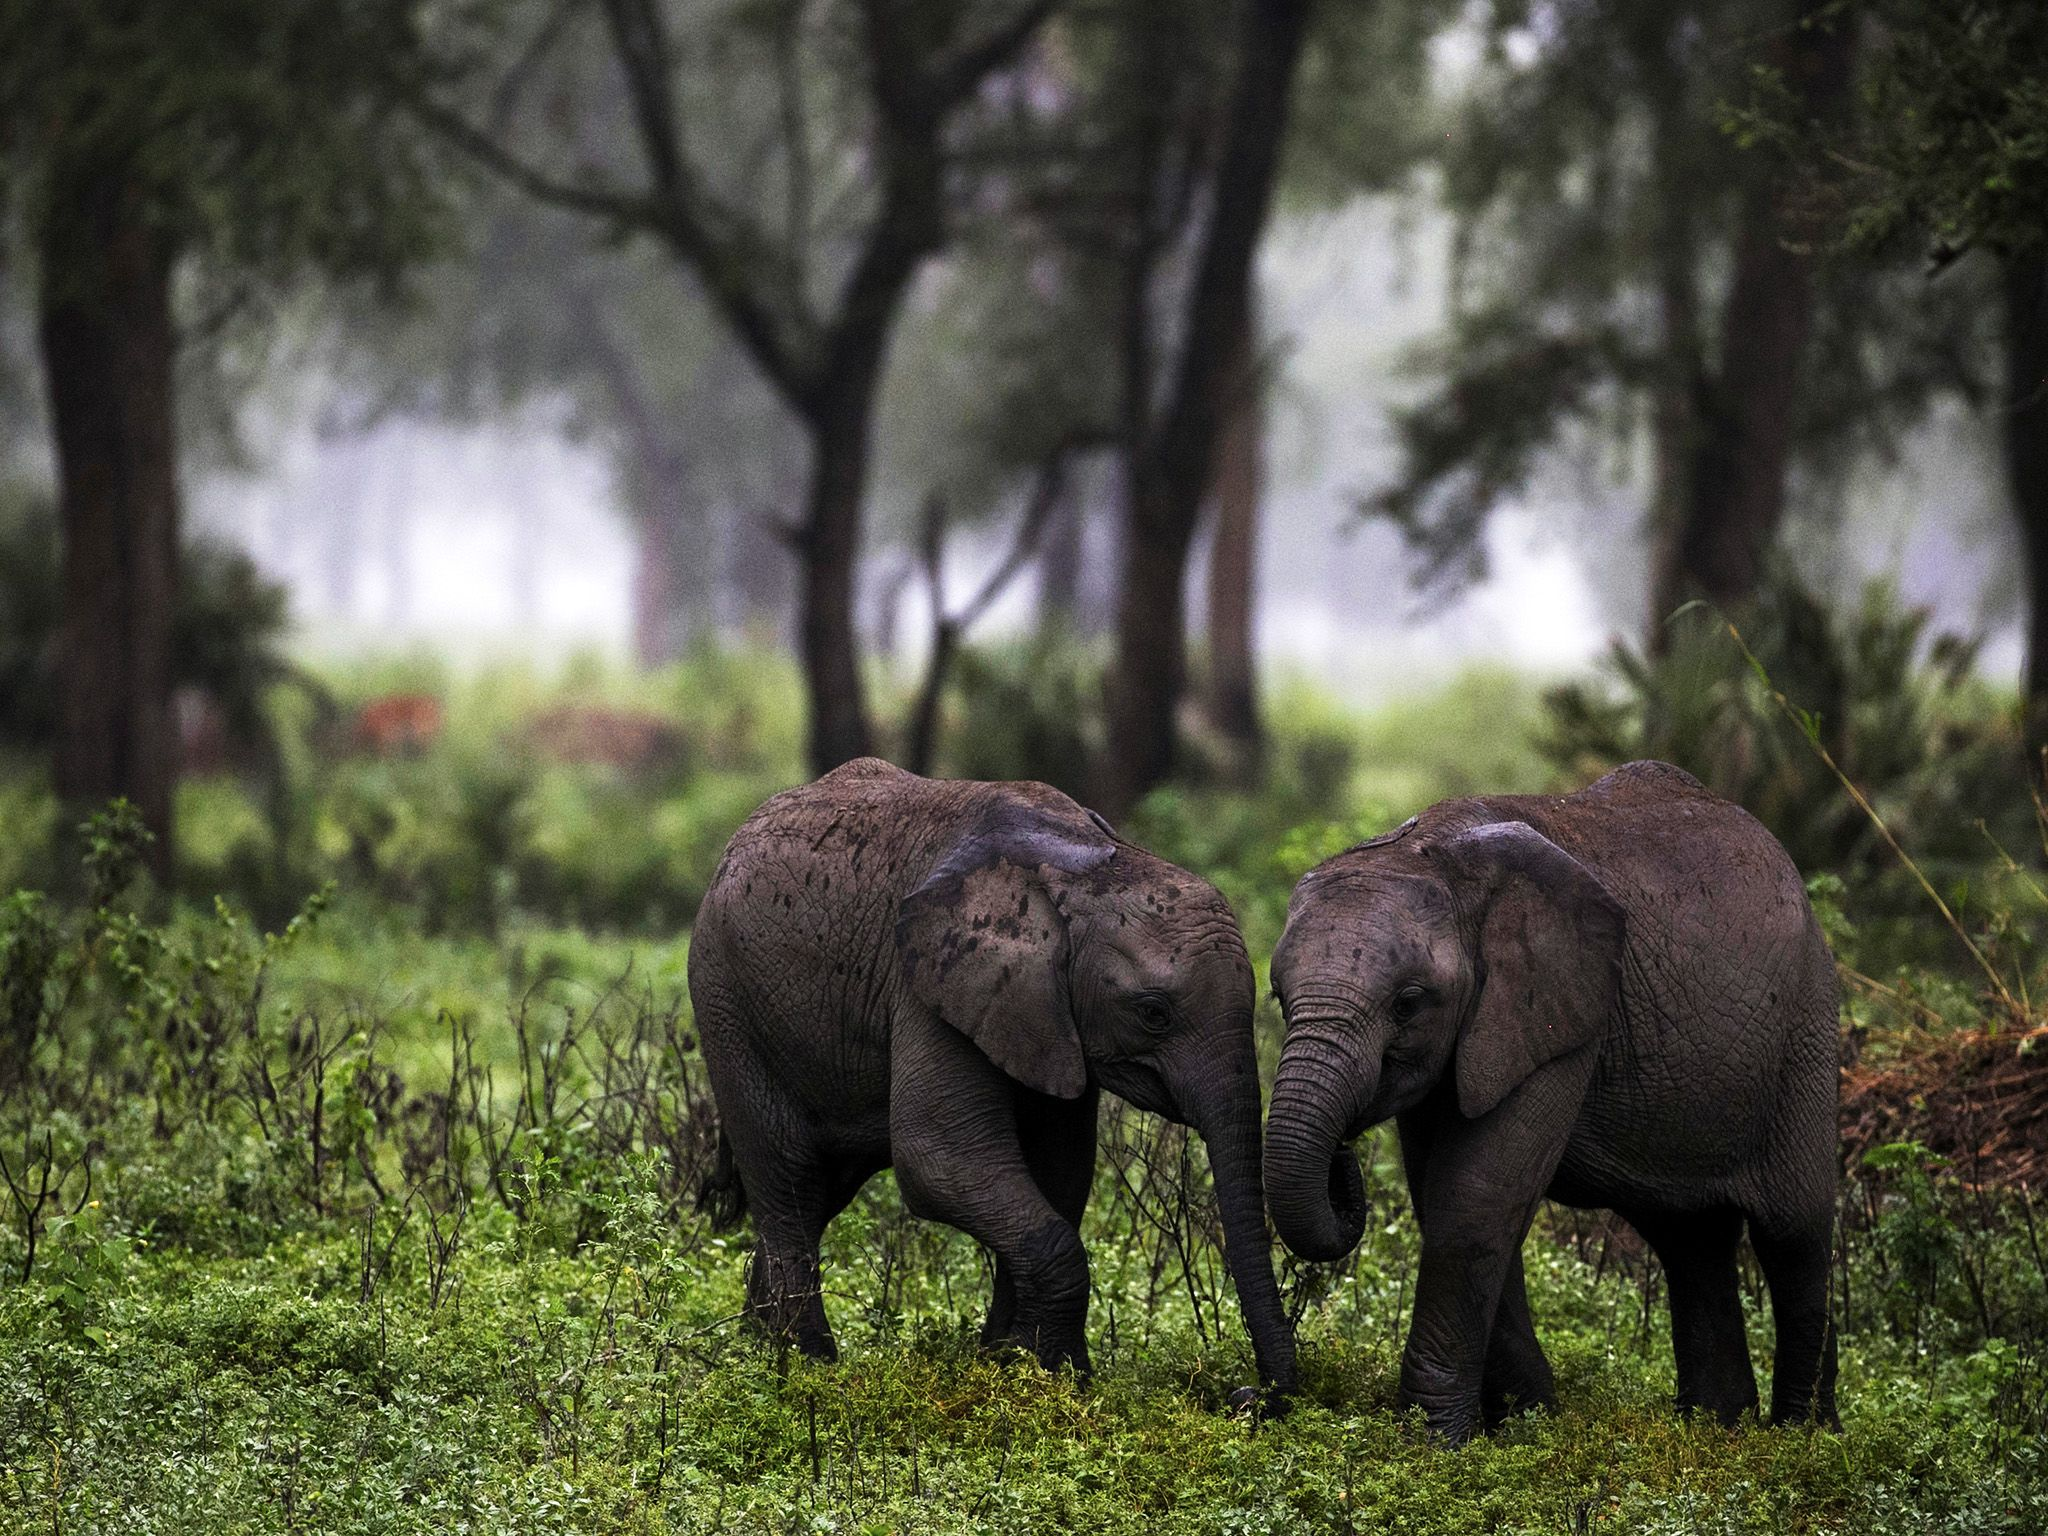 Mozambique: Two calves play in the morning mist. Gorongosa National Park, Mozambique. This image... [Photo of the day - October 2015]